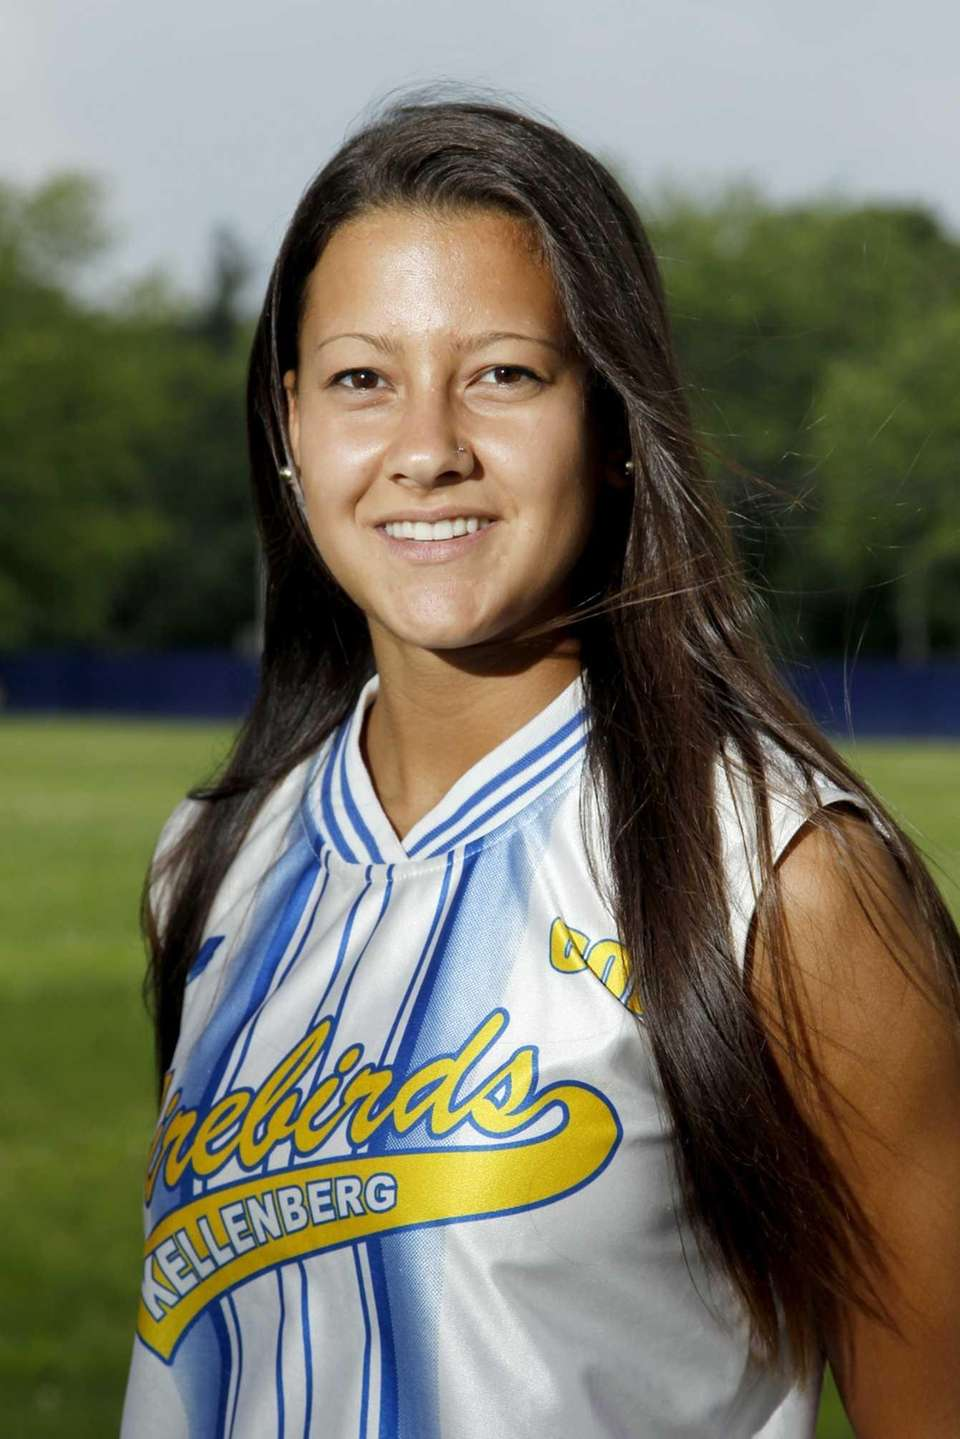 SABRINA DEANGELIS Pitcher, Kellenberg, senior The Oneonta-bound pitcher